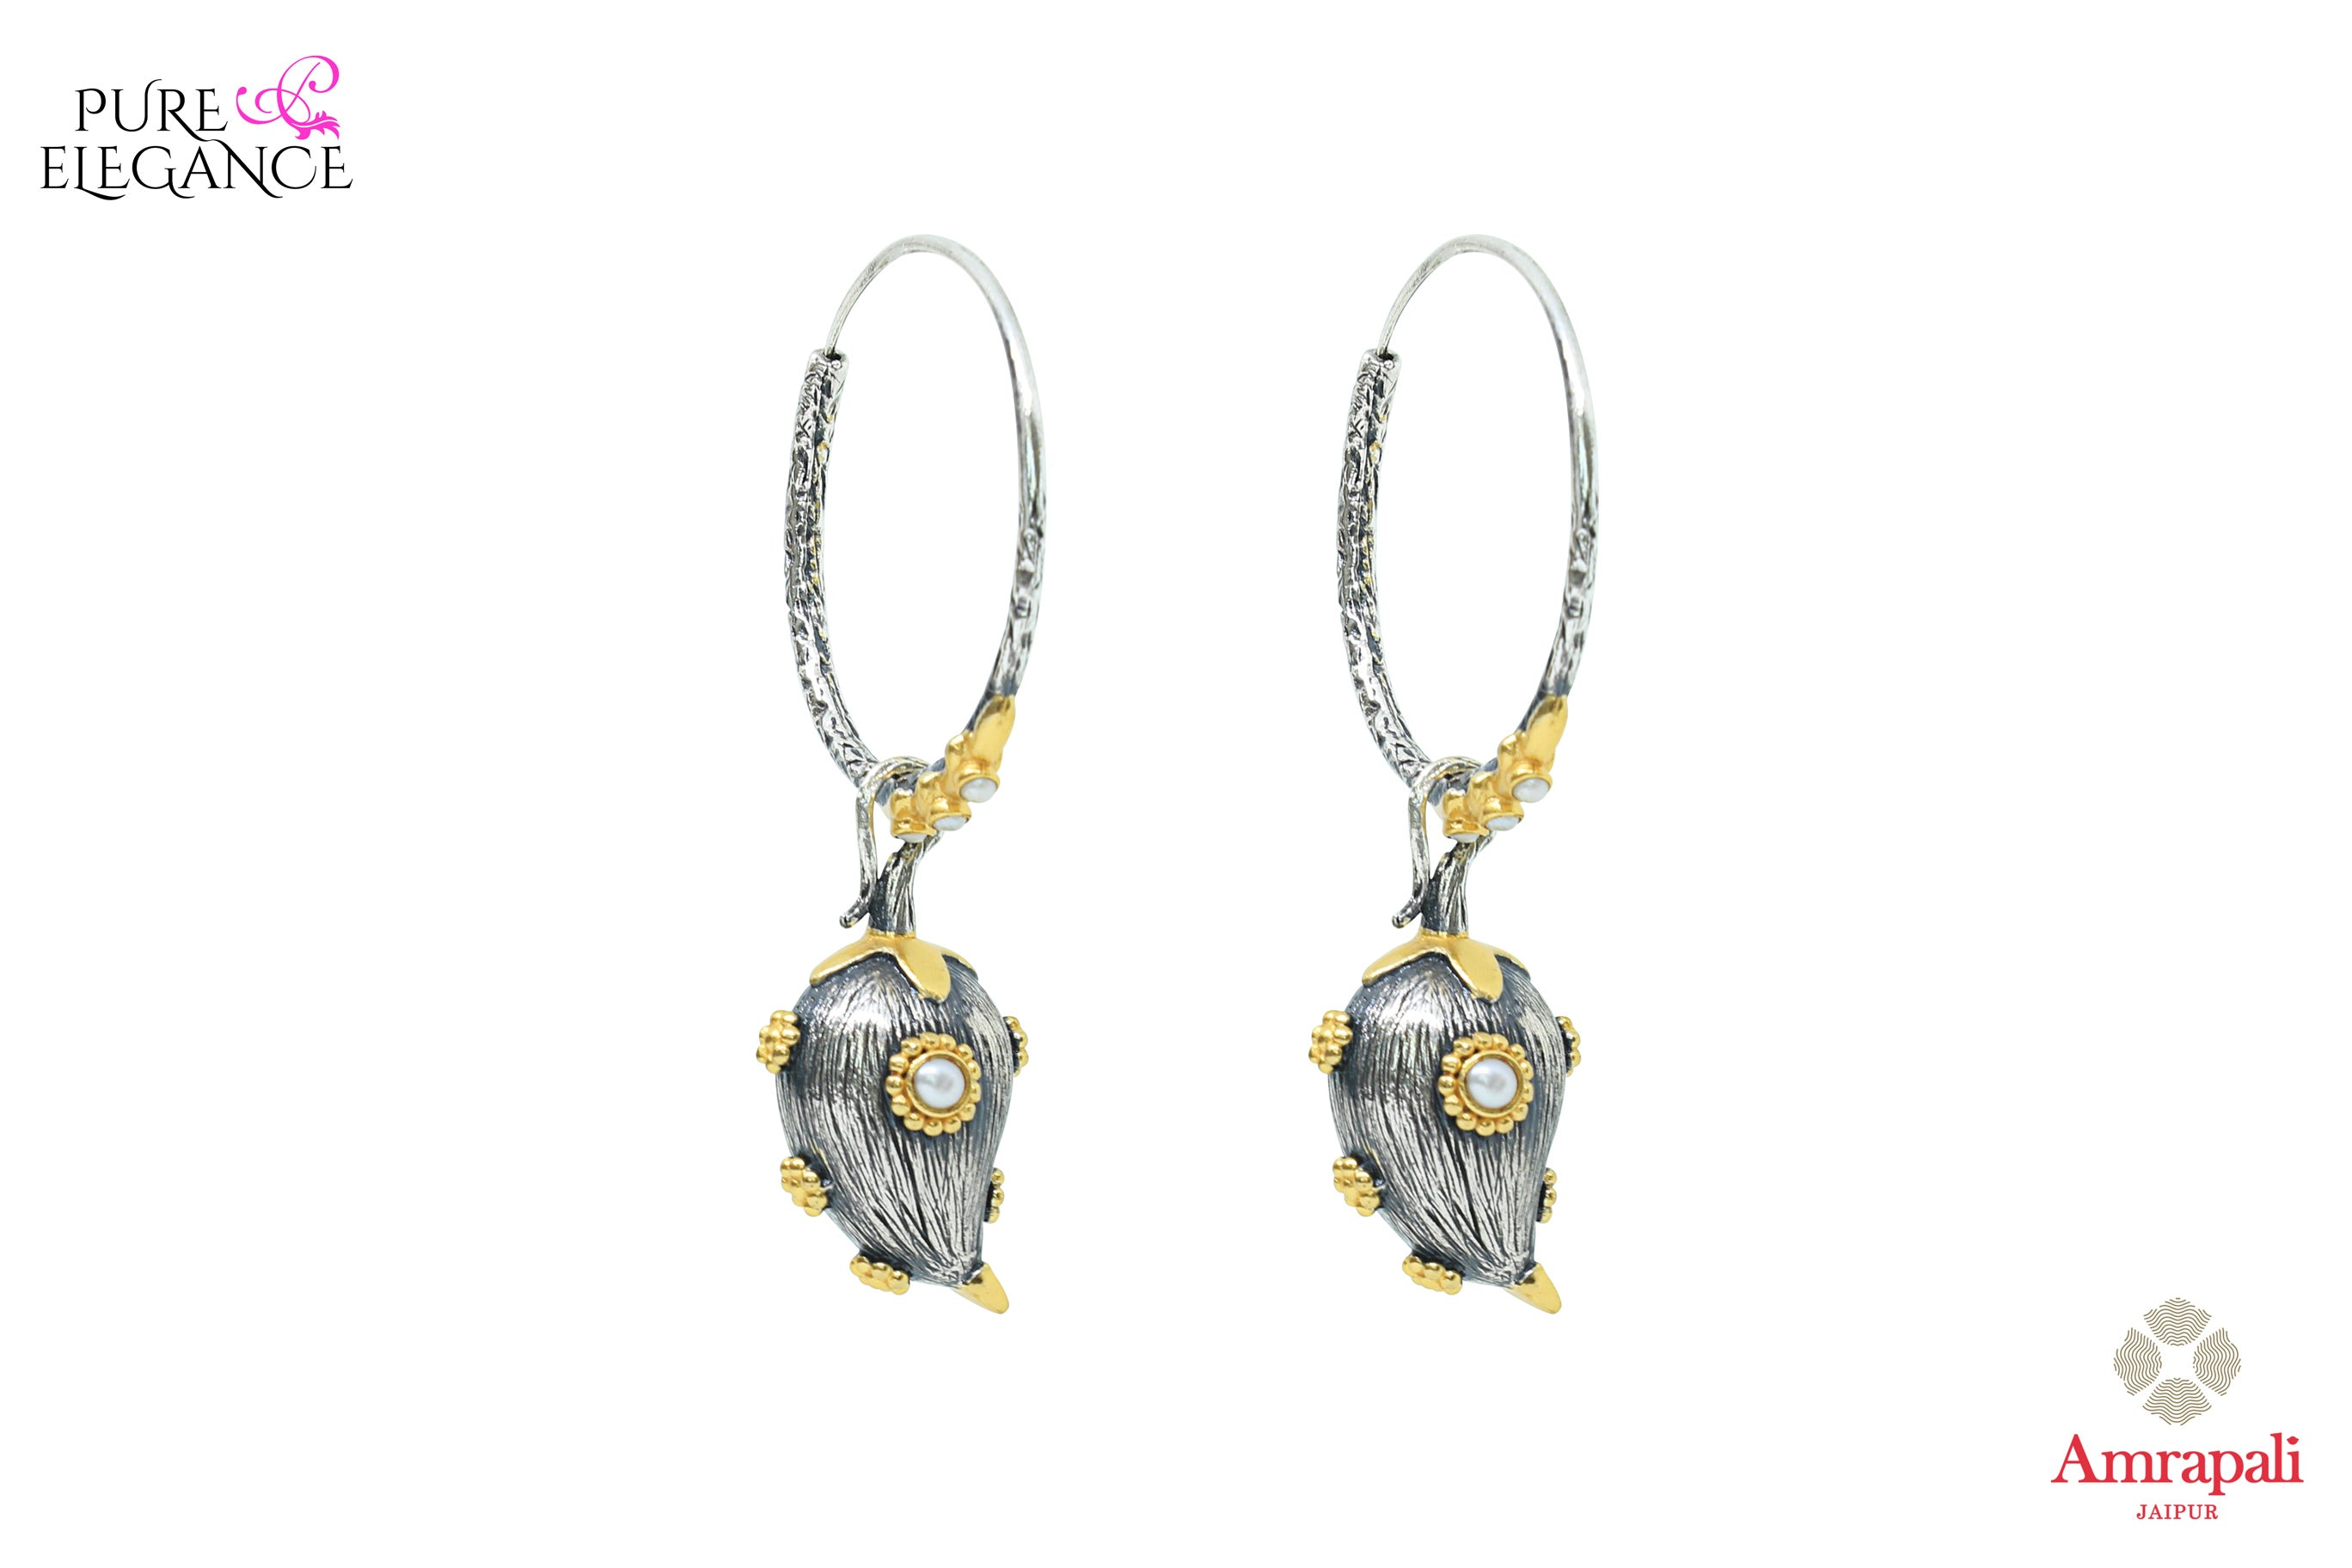 Shop Amrapali silver gold plated bali earrings online in USA. Find an exquisite collection of handcrafted Indian jewelry in USA at Pure Elegance Indian fashion store. Complete your festive look with beautiful silver gold plated necklaces, silver gold plated earrings, silver jewelry from our online store.-front